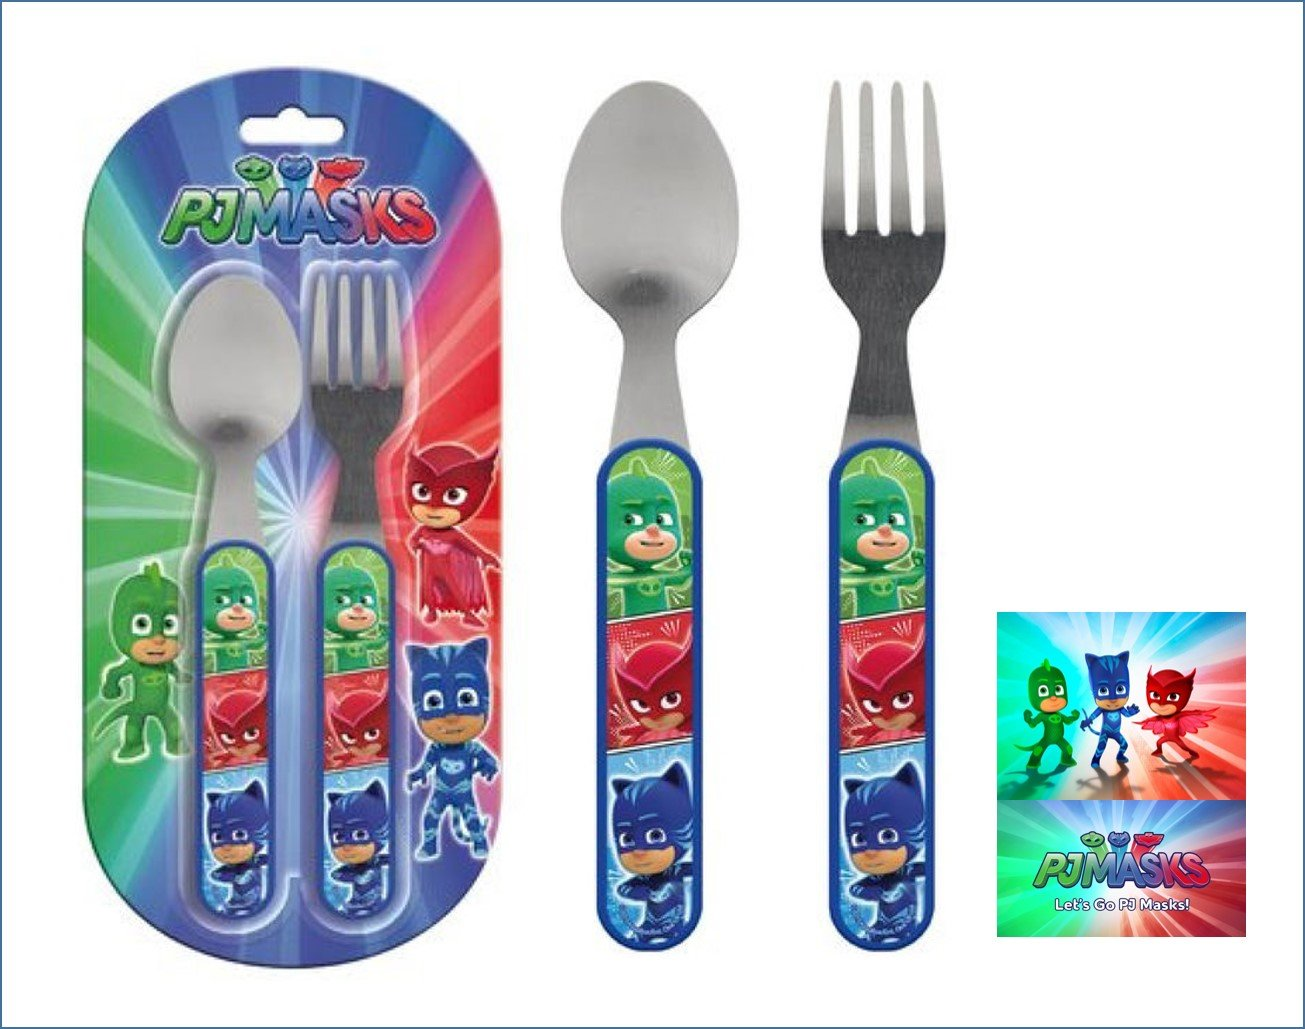 Kids stainless steel cutlery set spoon and fork Disney P J Masks: Amazon.es: Juguetes y juegos